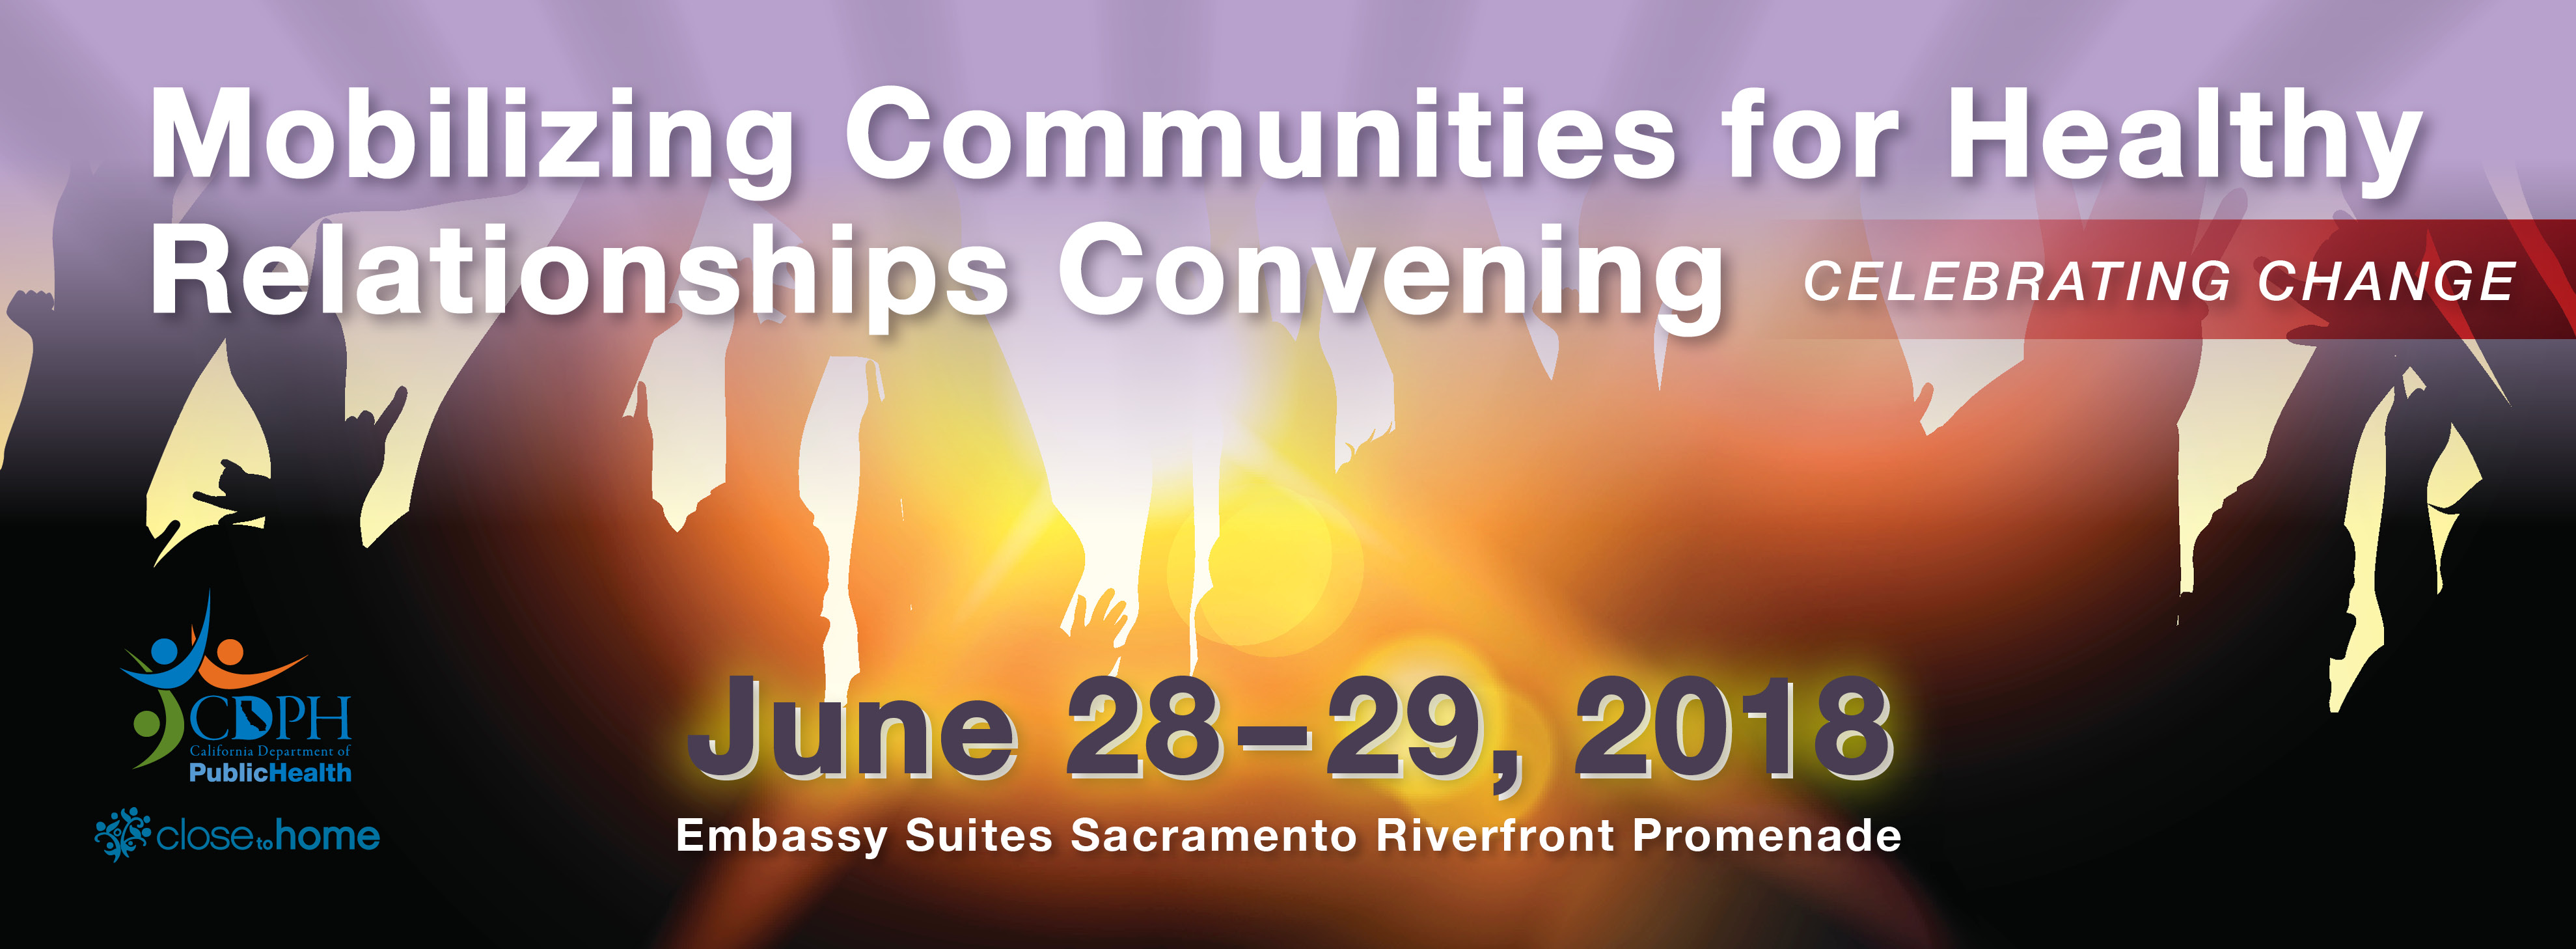 2018 Mobilizing Communities for Healthy Relationships Convening